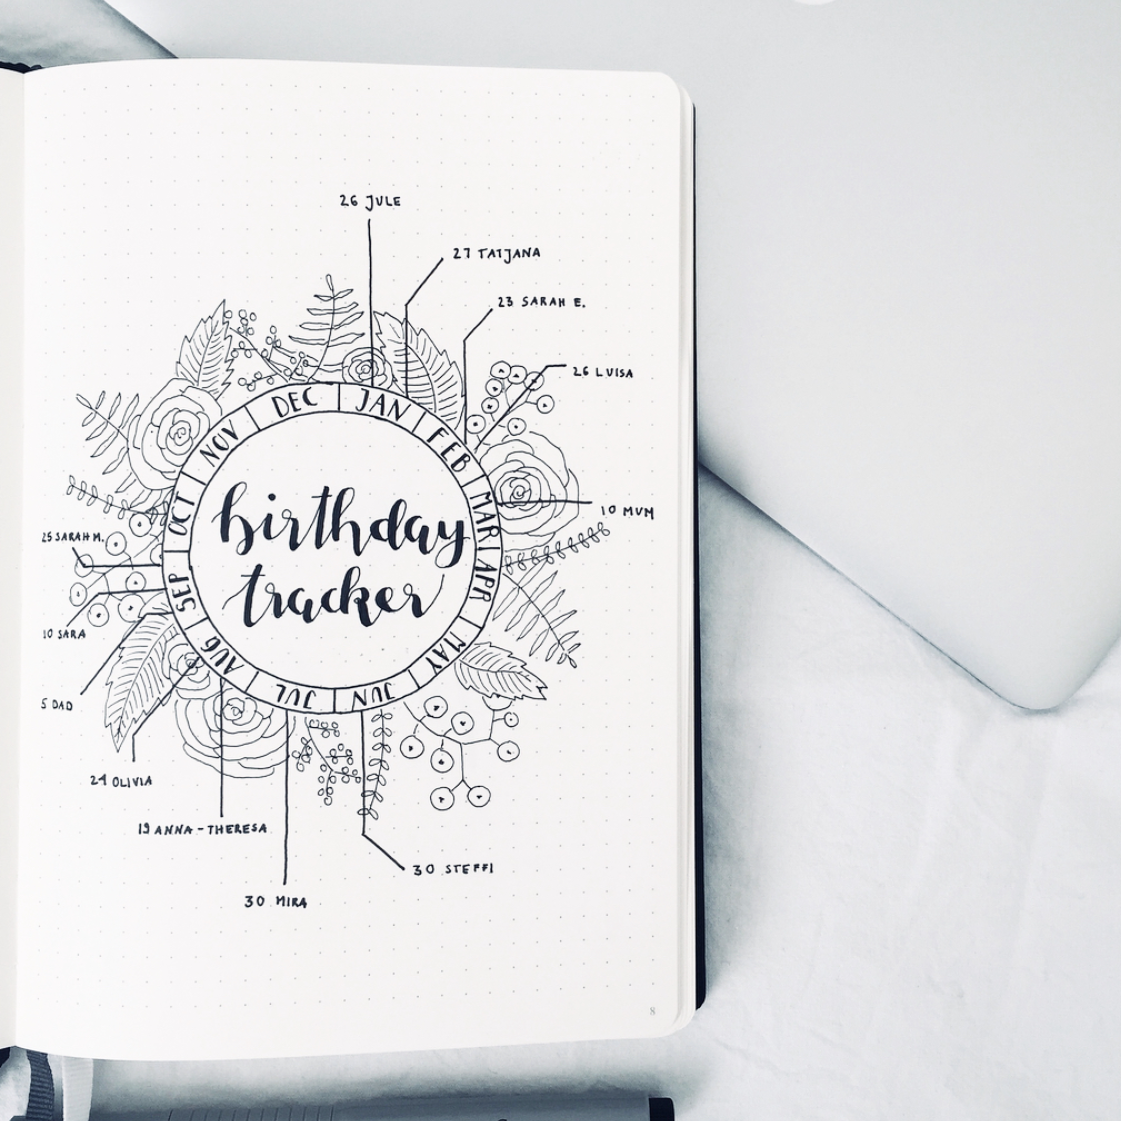 Creative Birthday Trackers to Try in your Bullet Journal